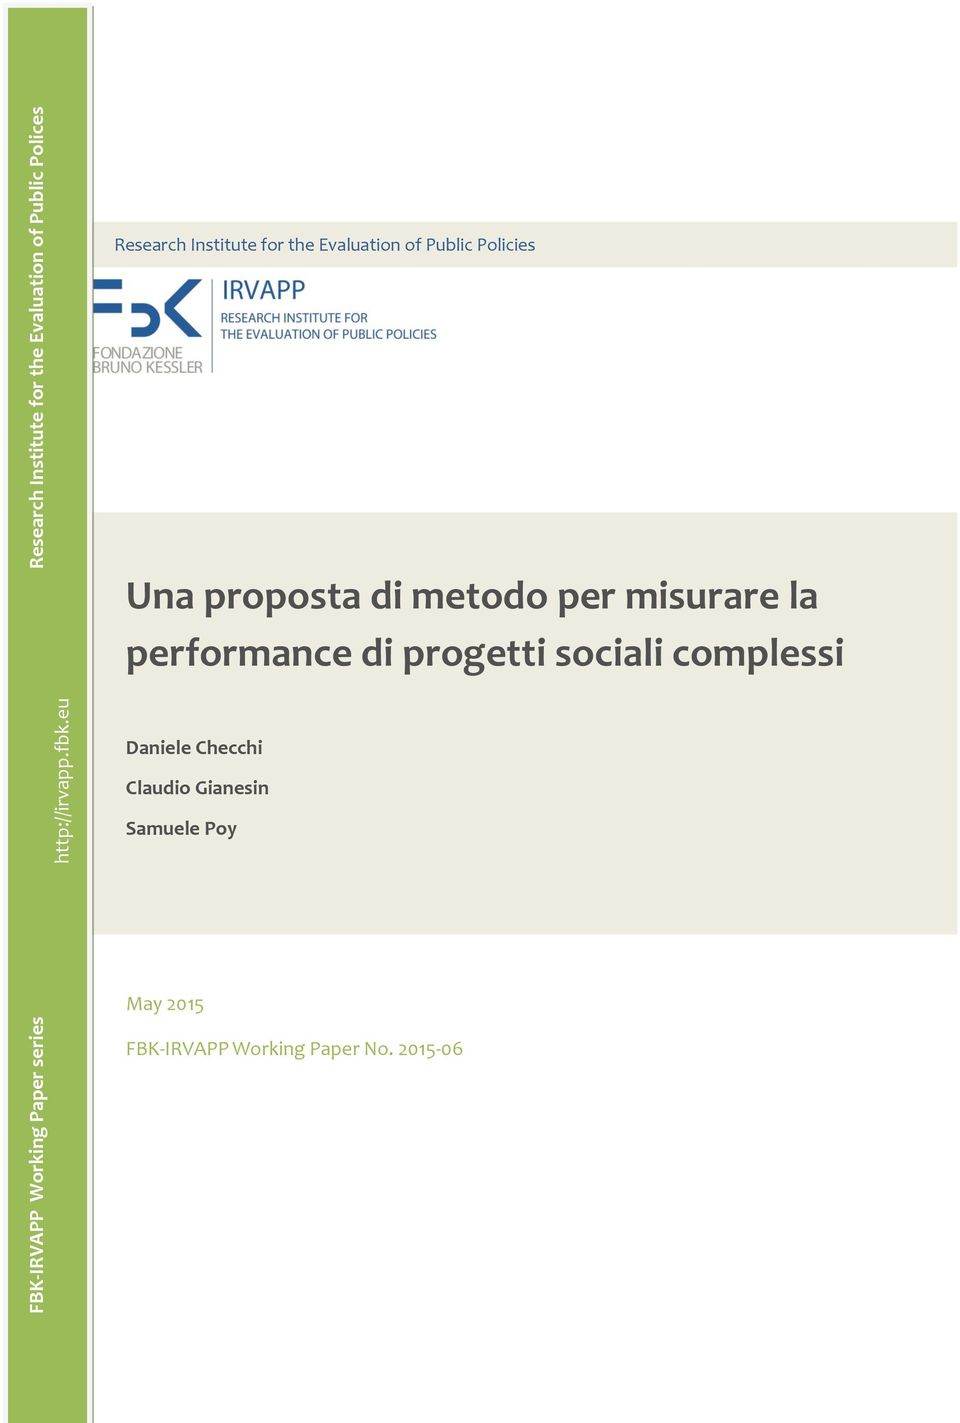 eu Research Institute for the Evaluation of Public Policies Una proposta di metodo